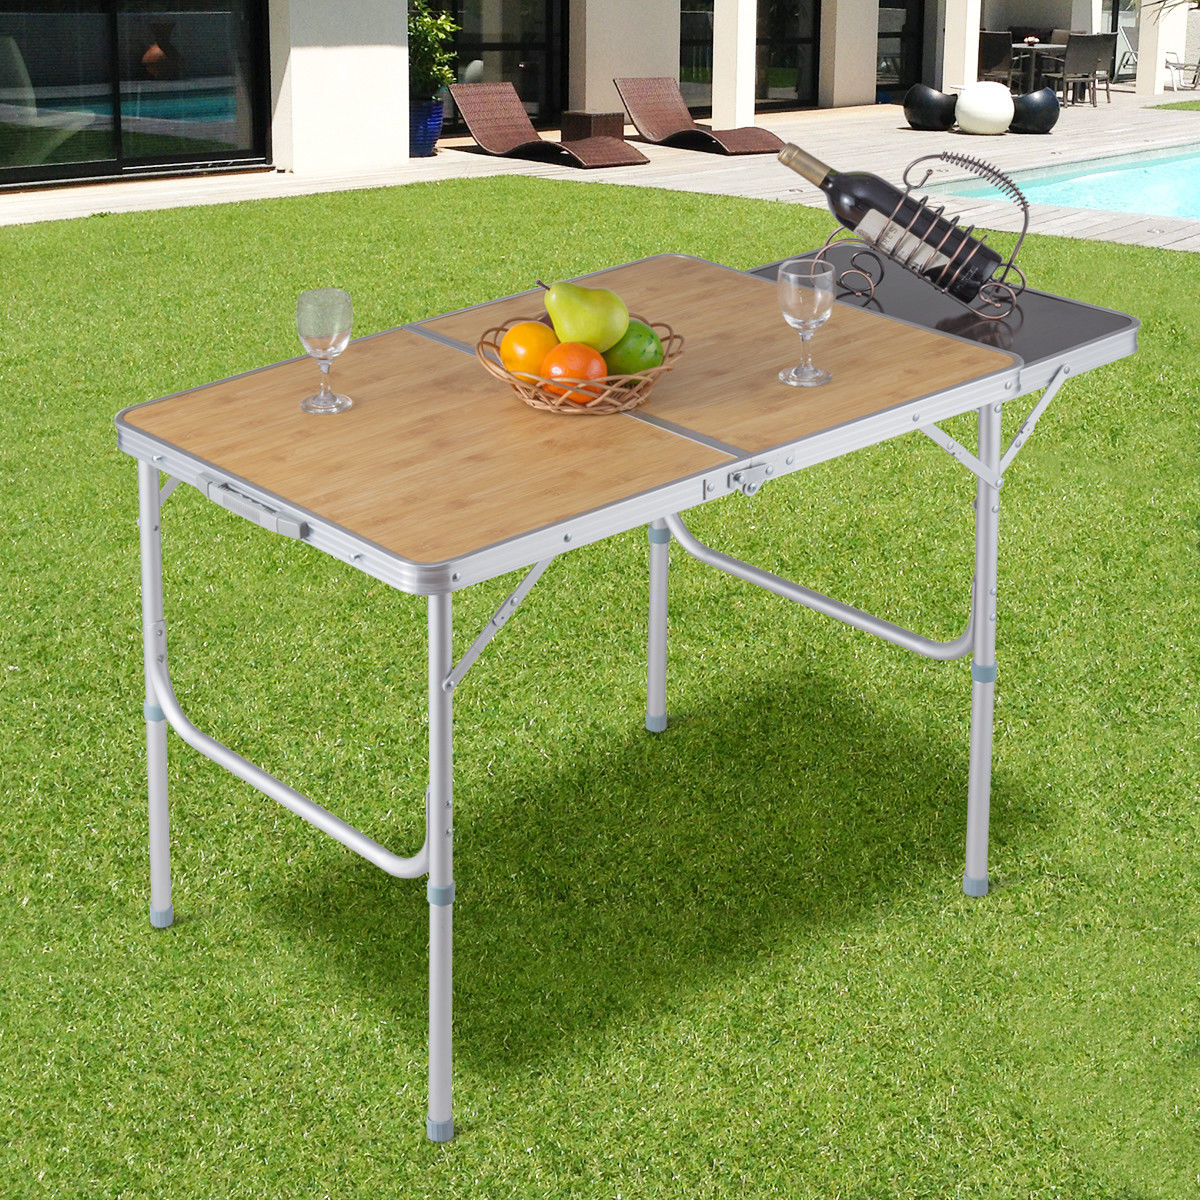 Costway Aluminum Folding Picnic Camping Table Lightweight Indoor Outdoor Garden Party by Costway